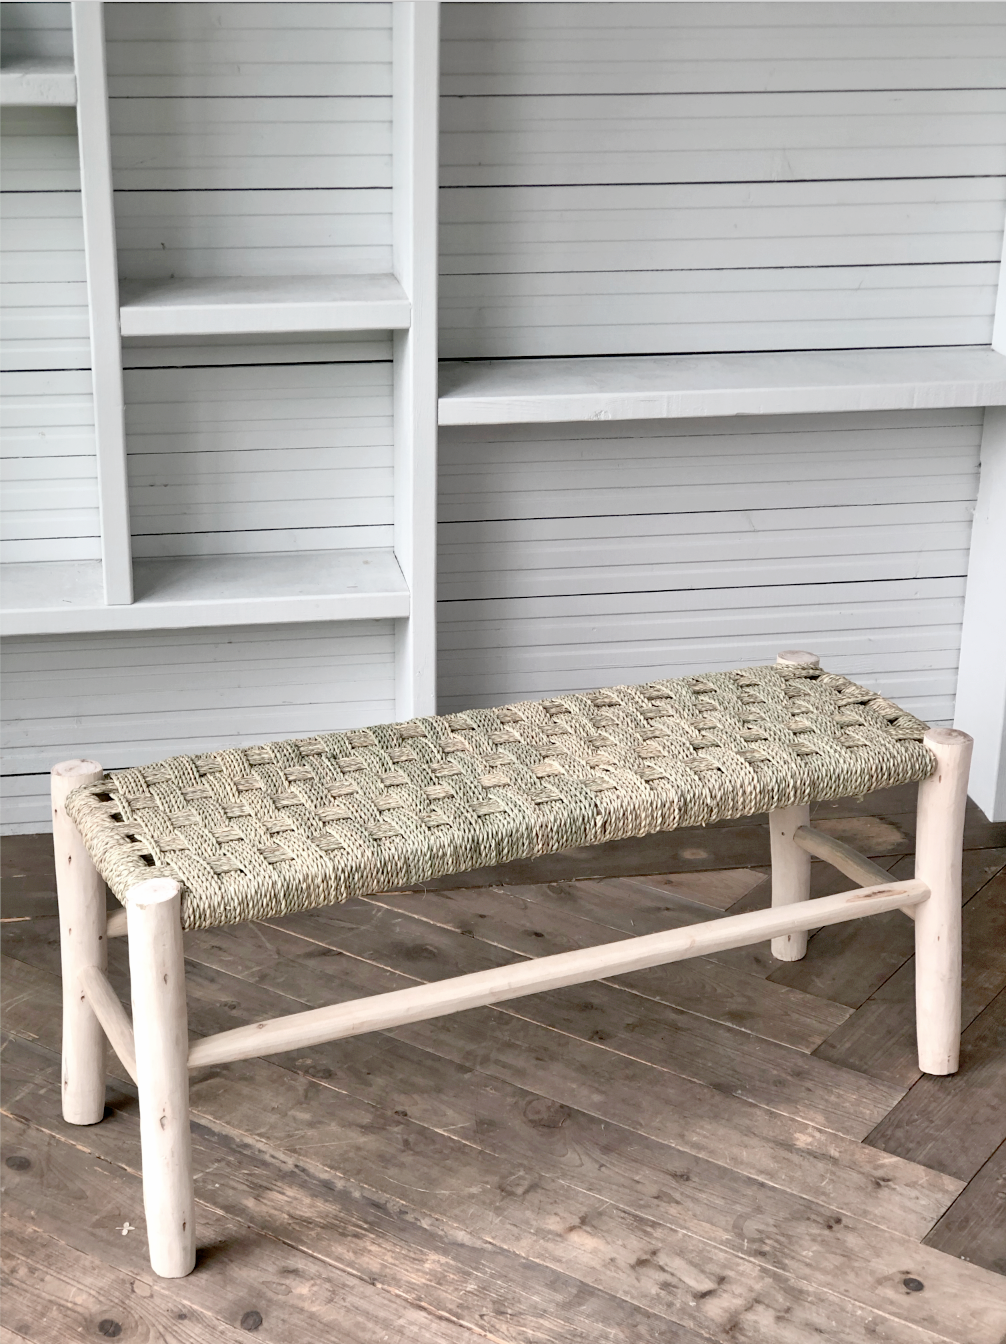 CROSS WOVEN SEAGRASS BENCH | Pre-Order